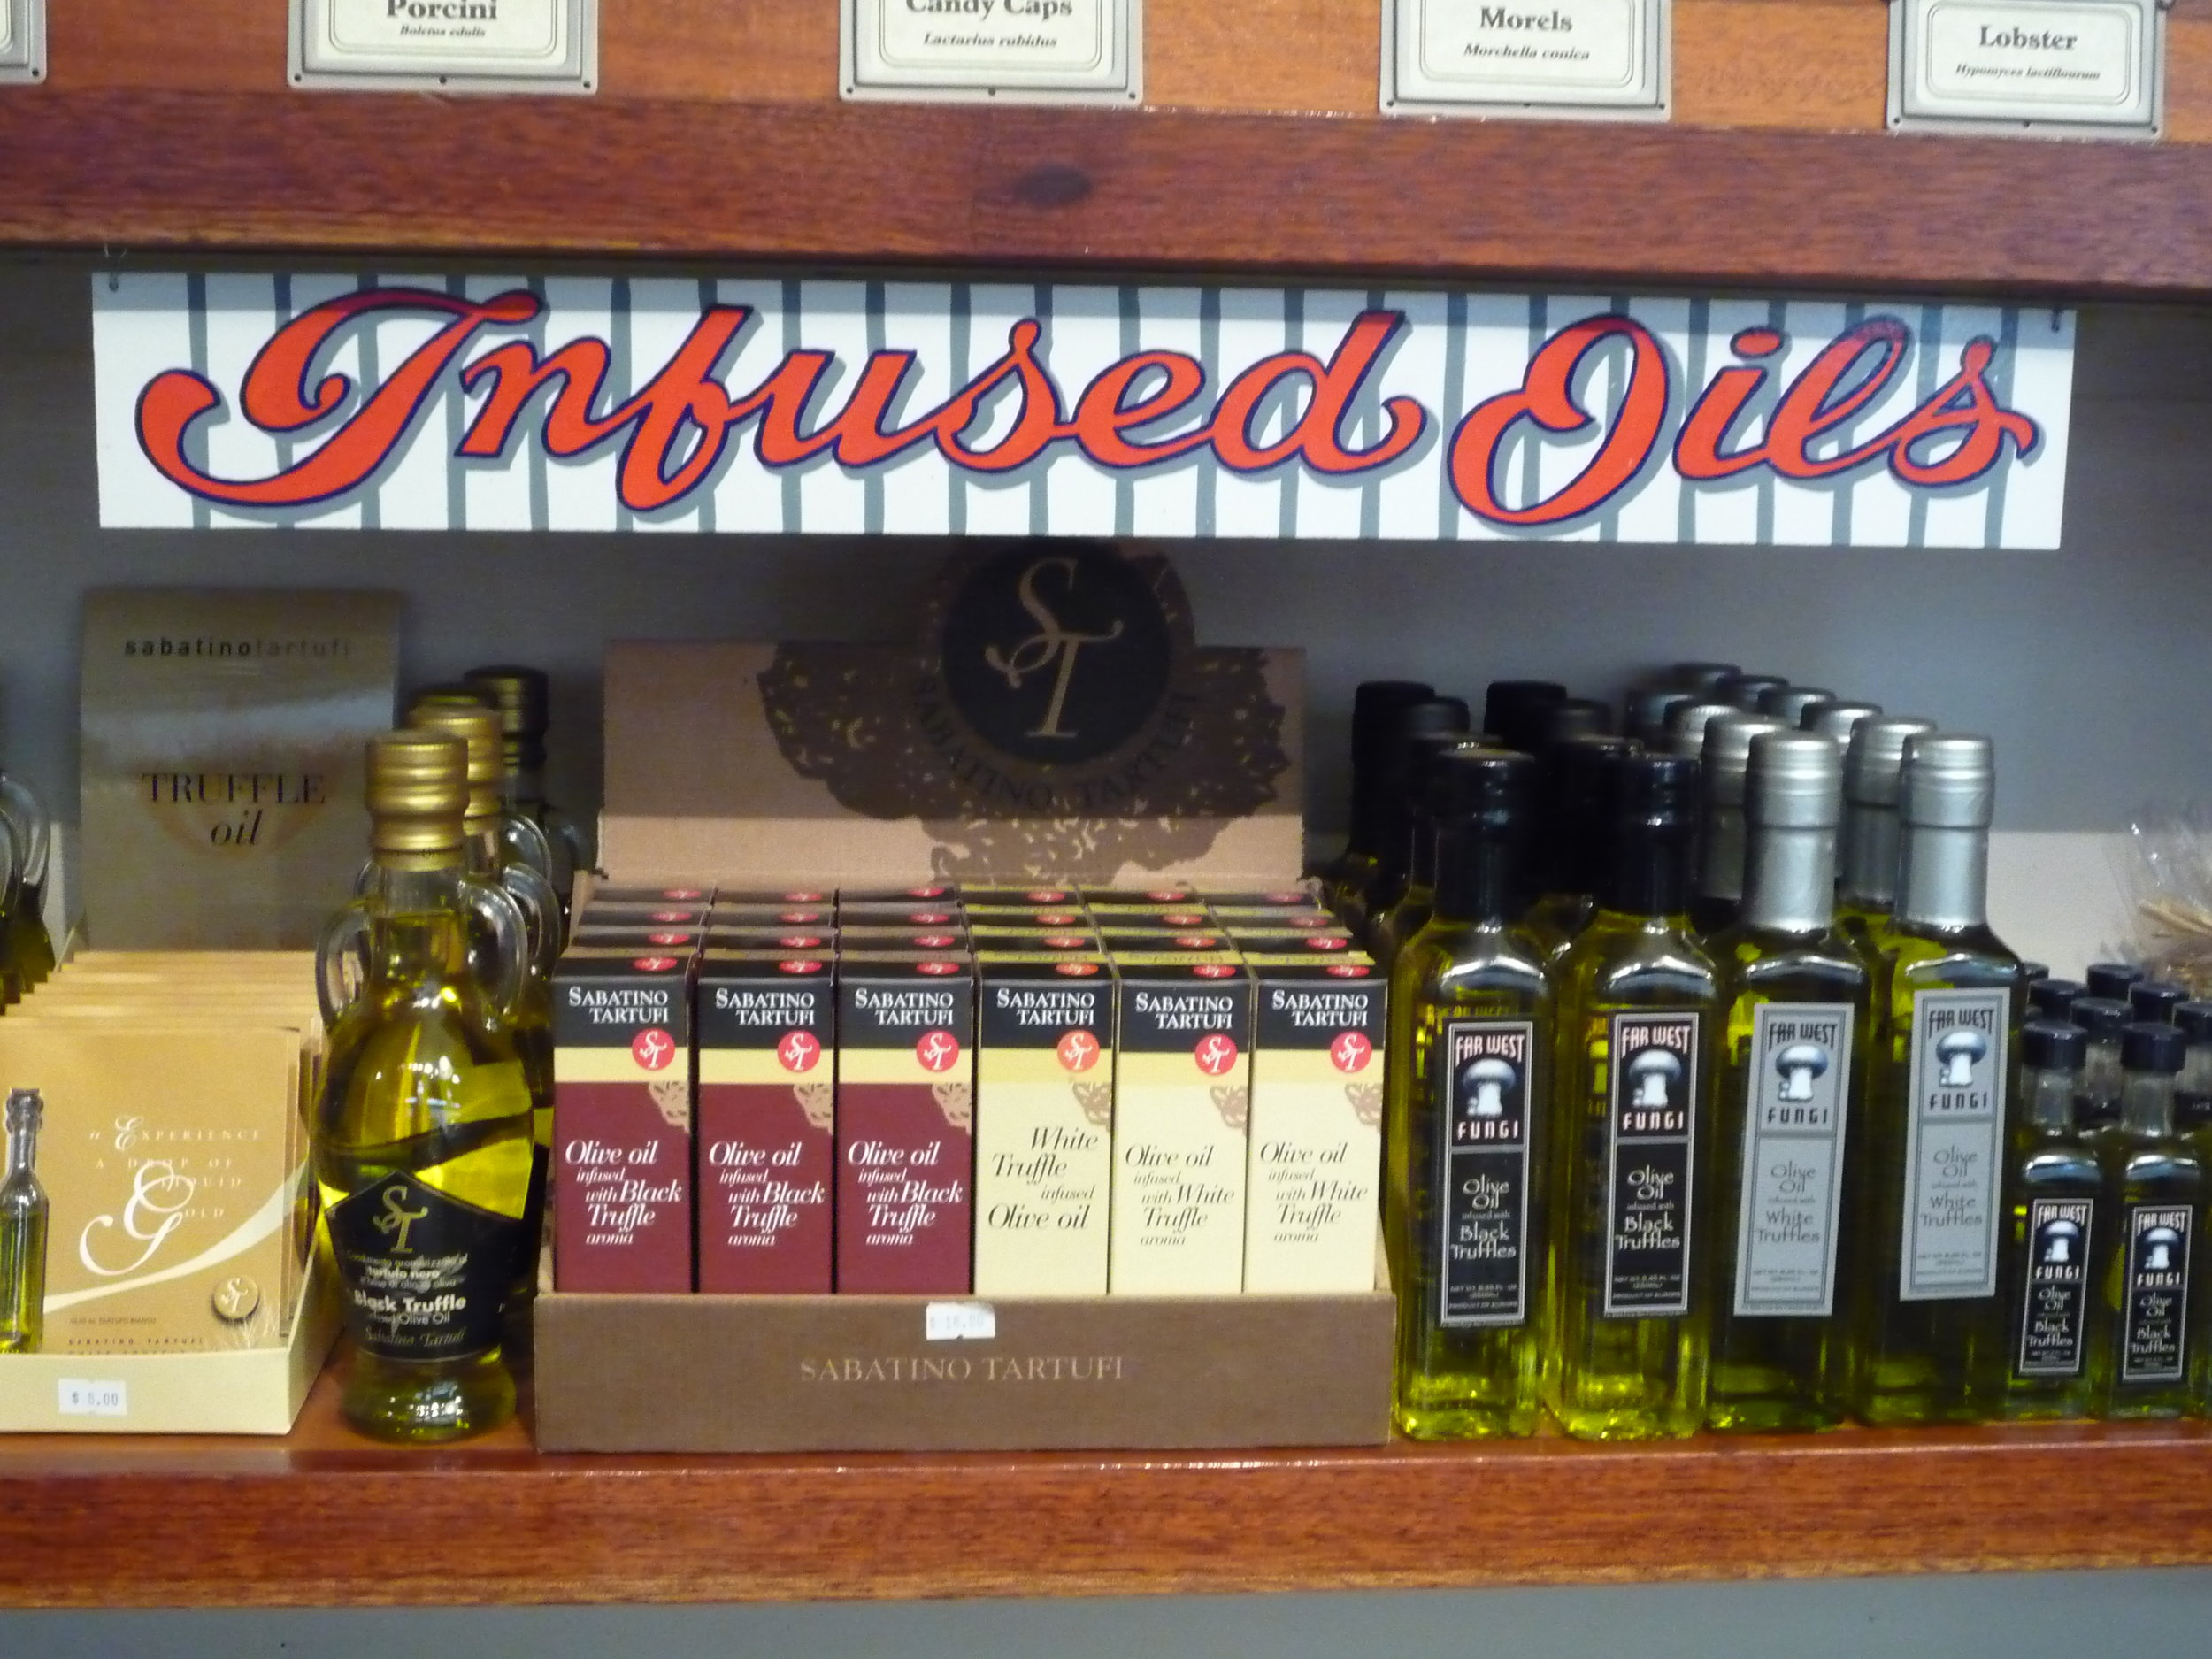 HAND-far-west-fungi-infused-oils-shelf-sign_4322990523_o.jpg